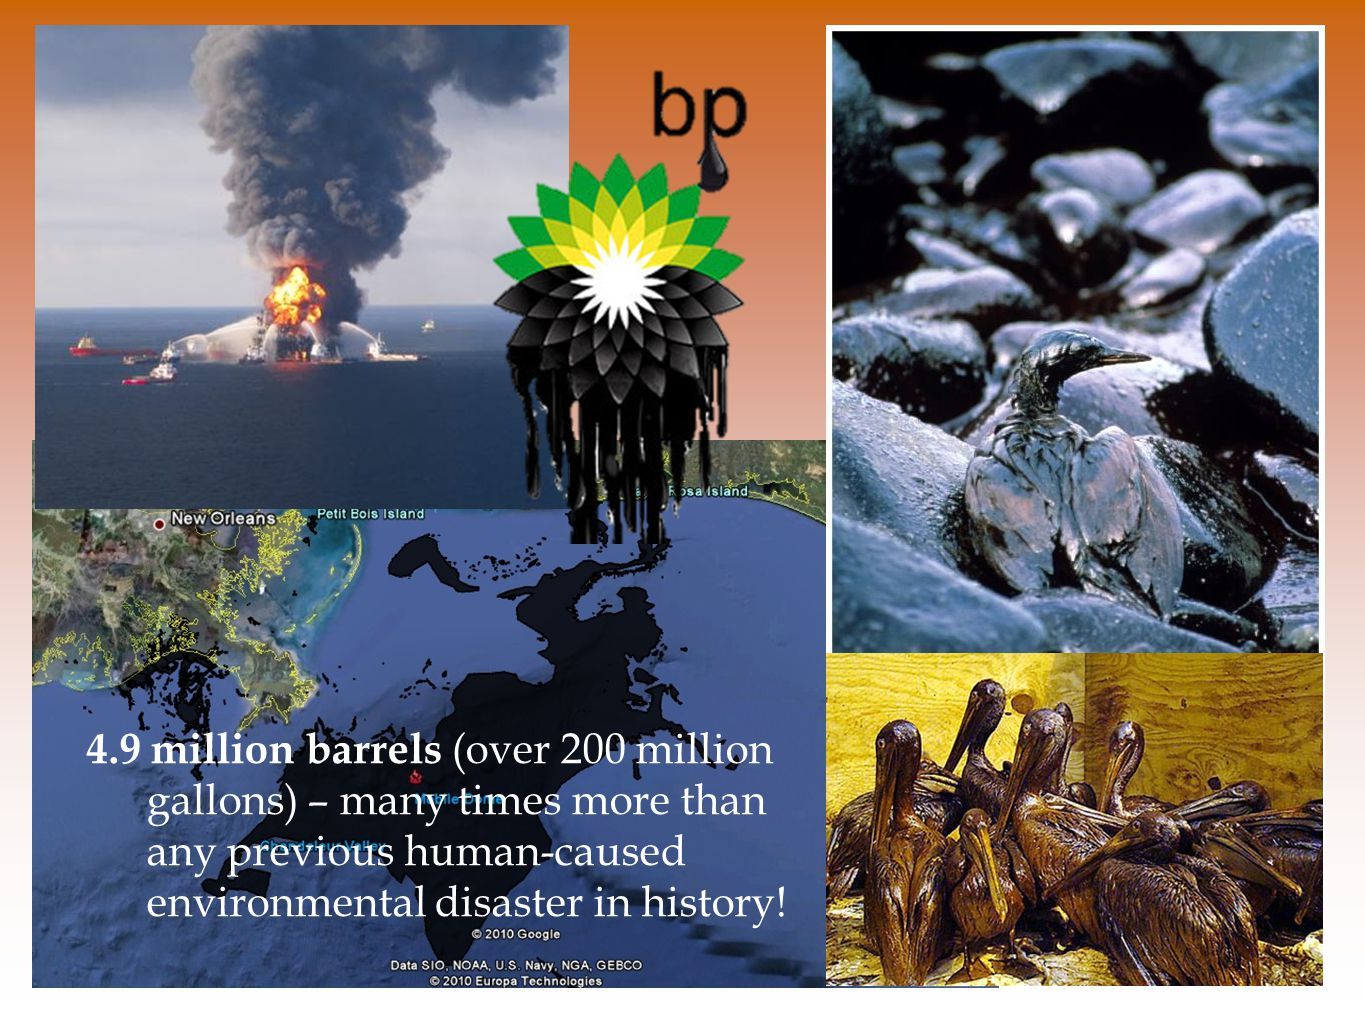 4.9 million barrels (over 200 million gallons) – many times more than any previous human-caused environmental disaster in history!